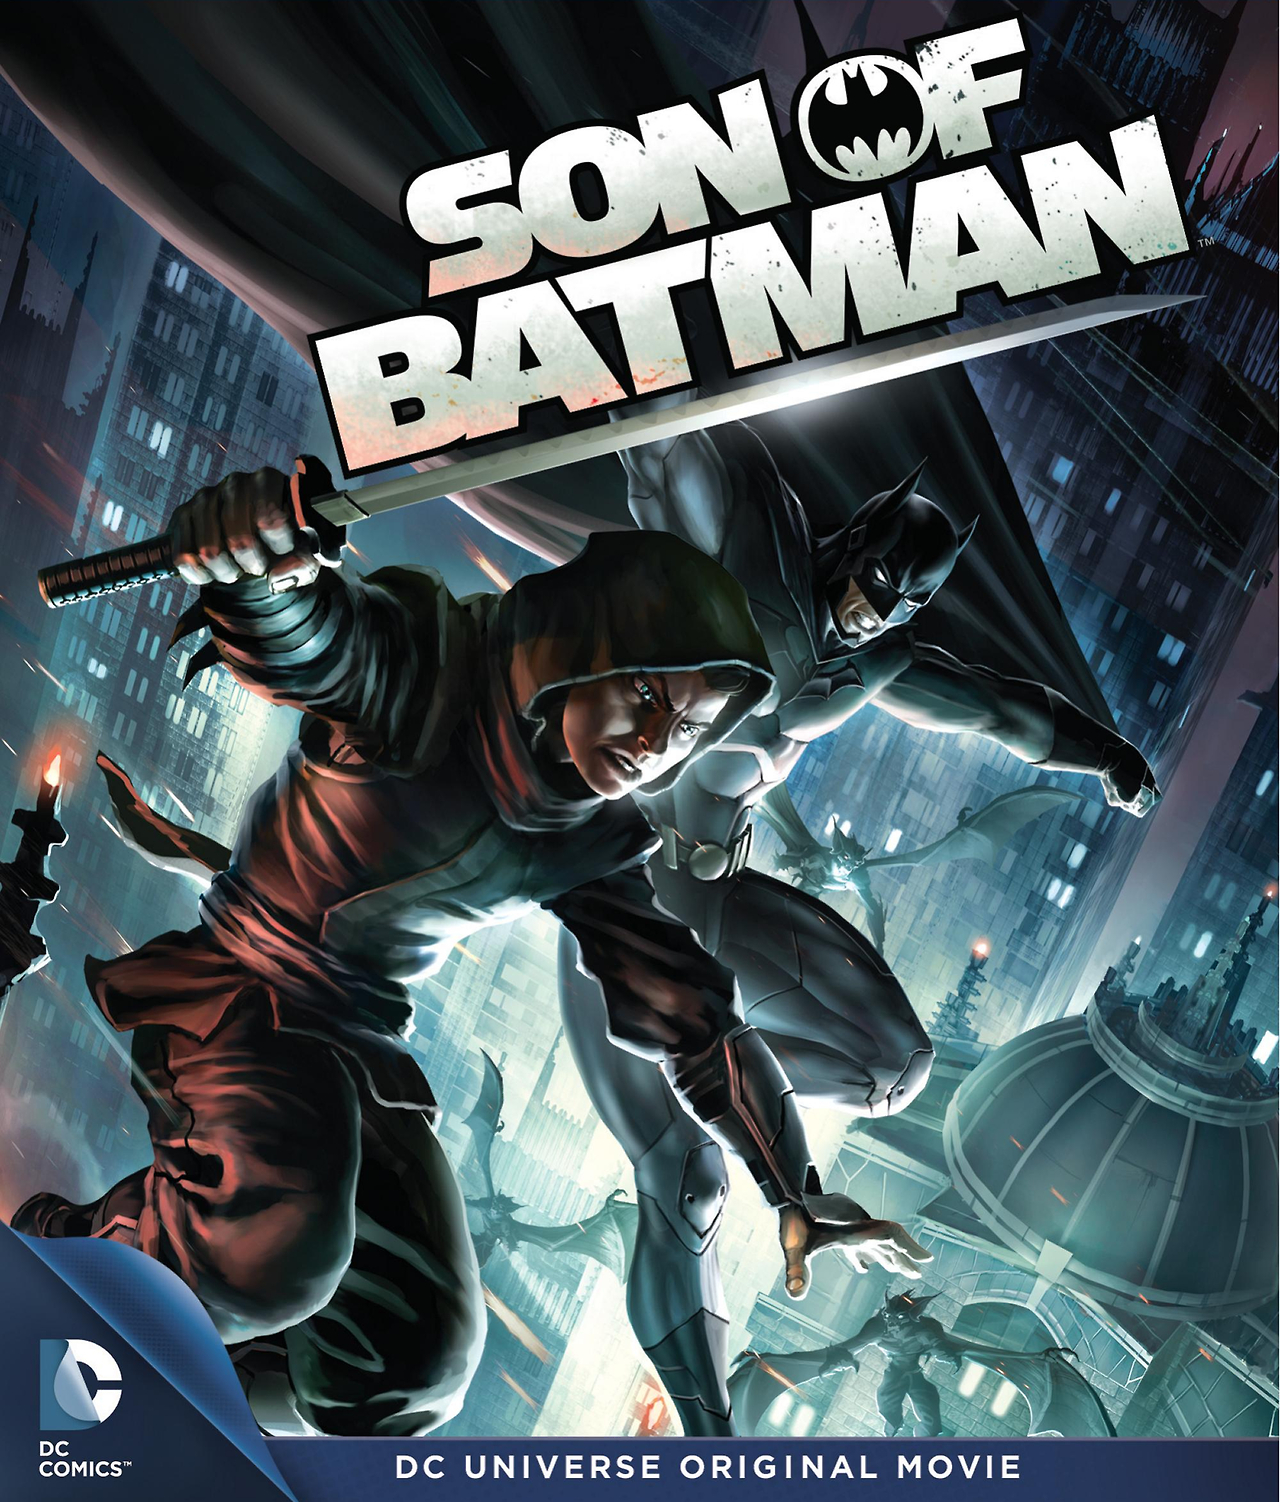 Son_of_Batman_cover,Son of Batman,Batman,batman son,damian wayne,bruce wayne,Son of Batman Cartoon,Son of Batman Moive,